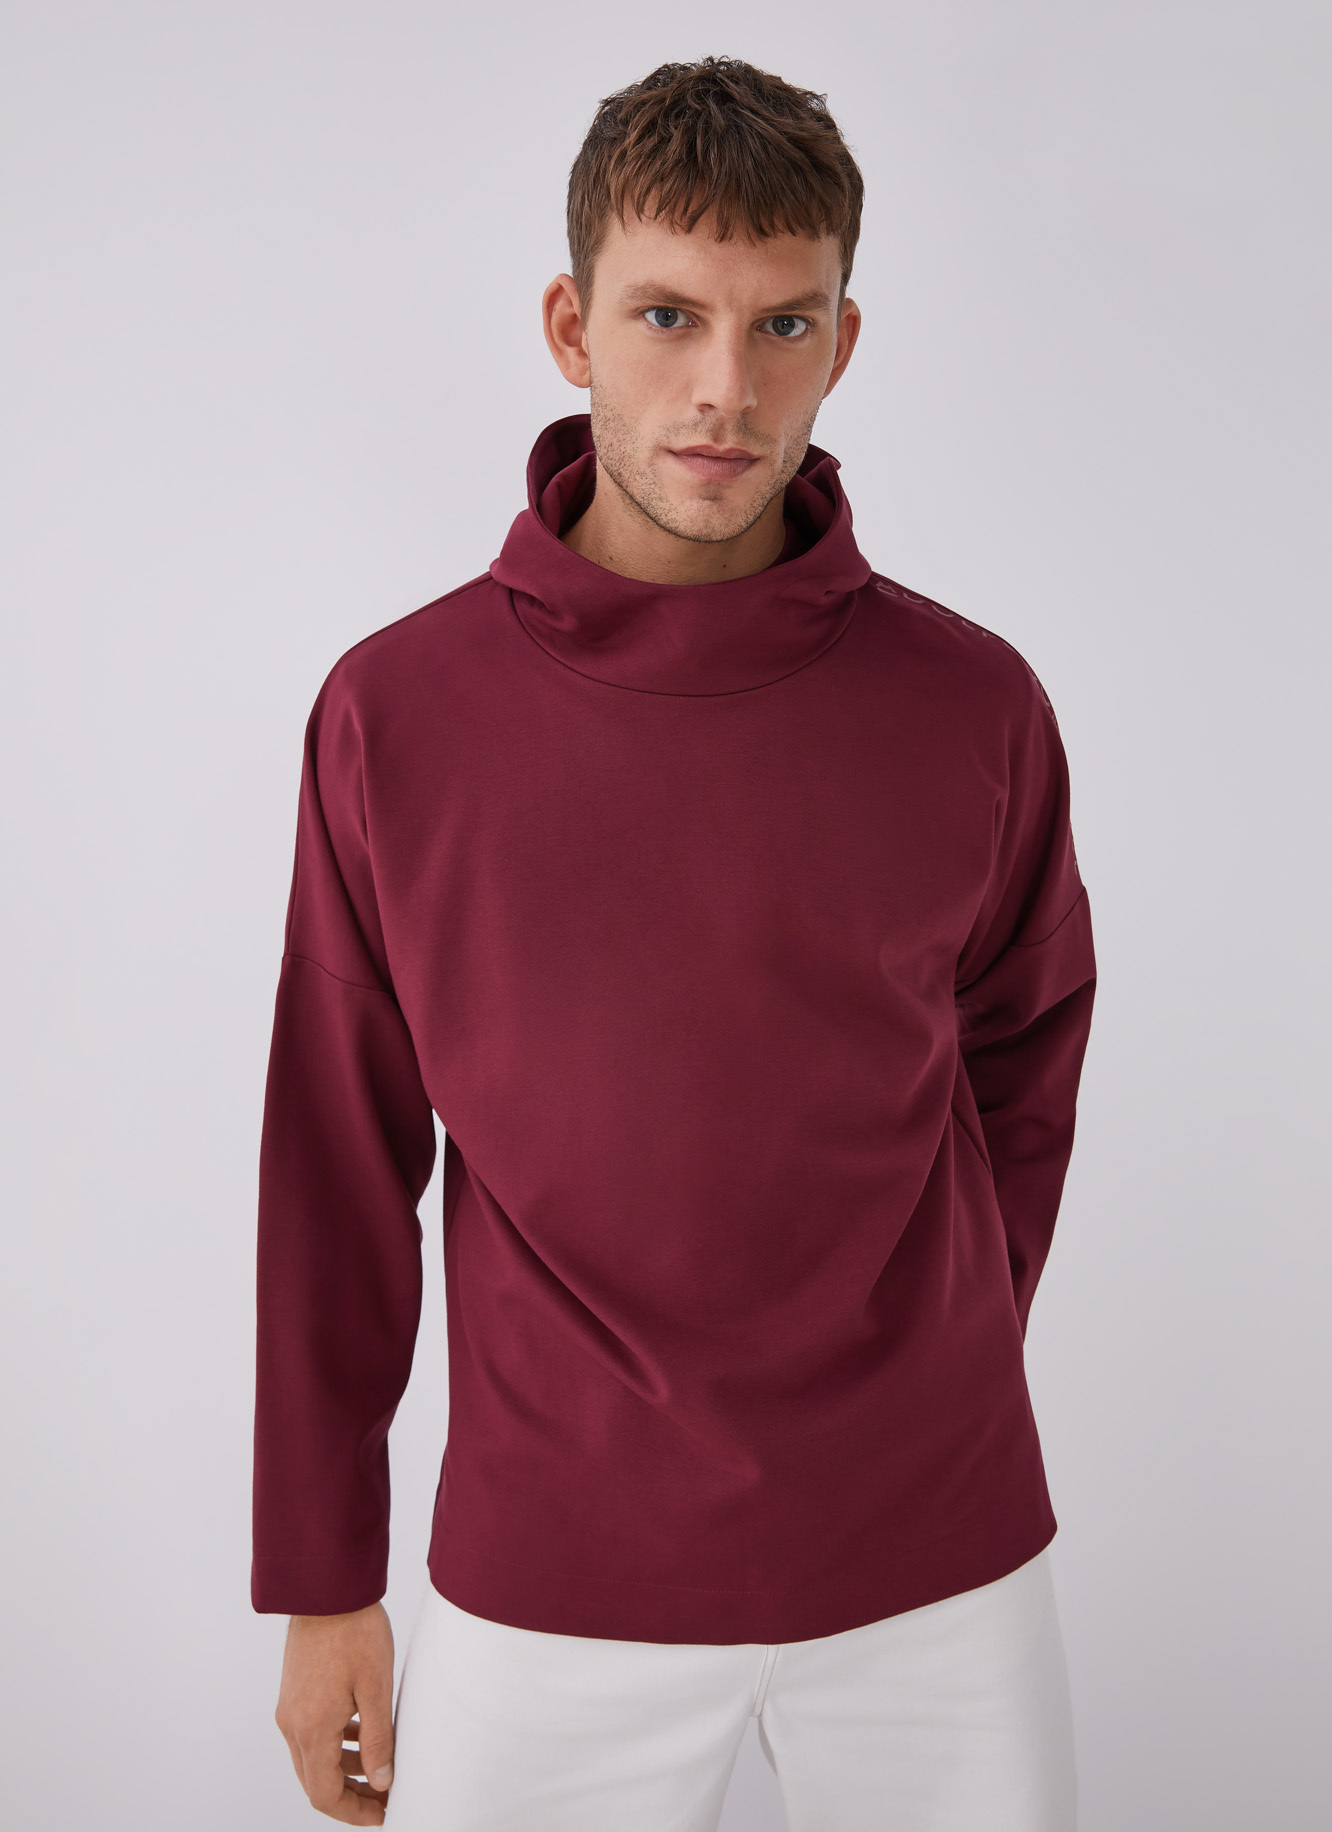 HOODED SWEATSHIRT WITH CHIMNEY COLLAR